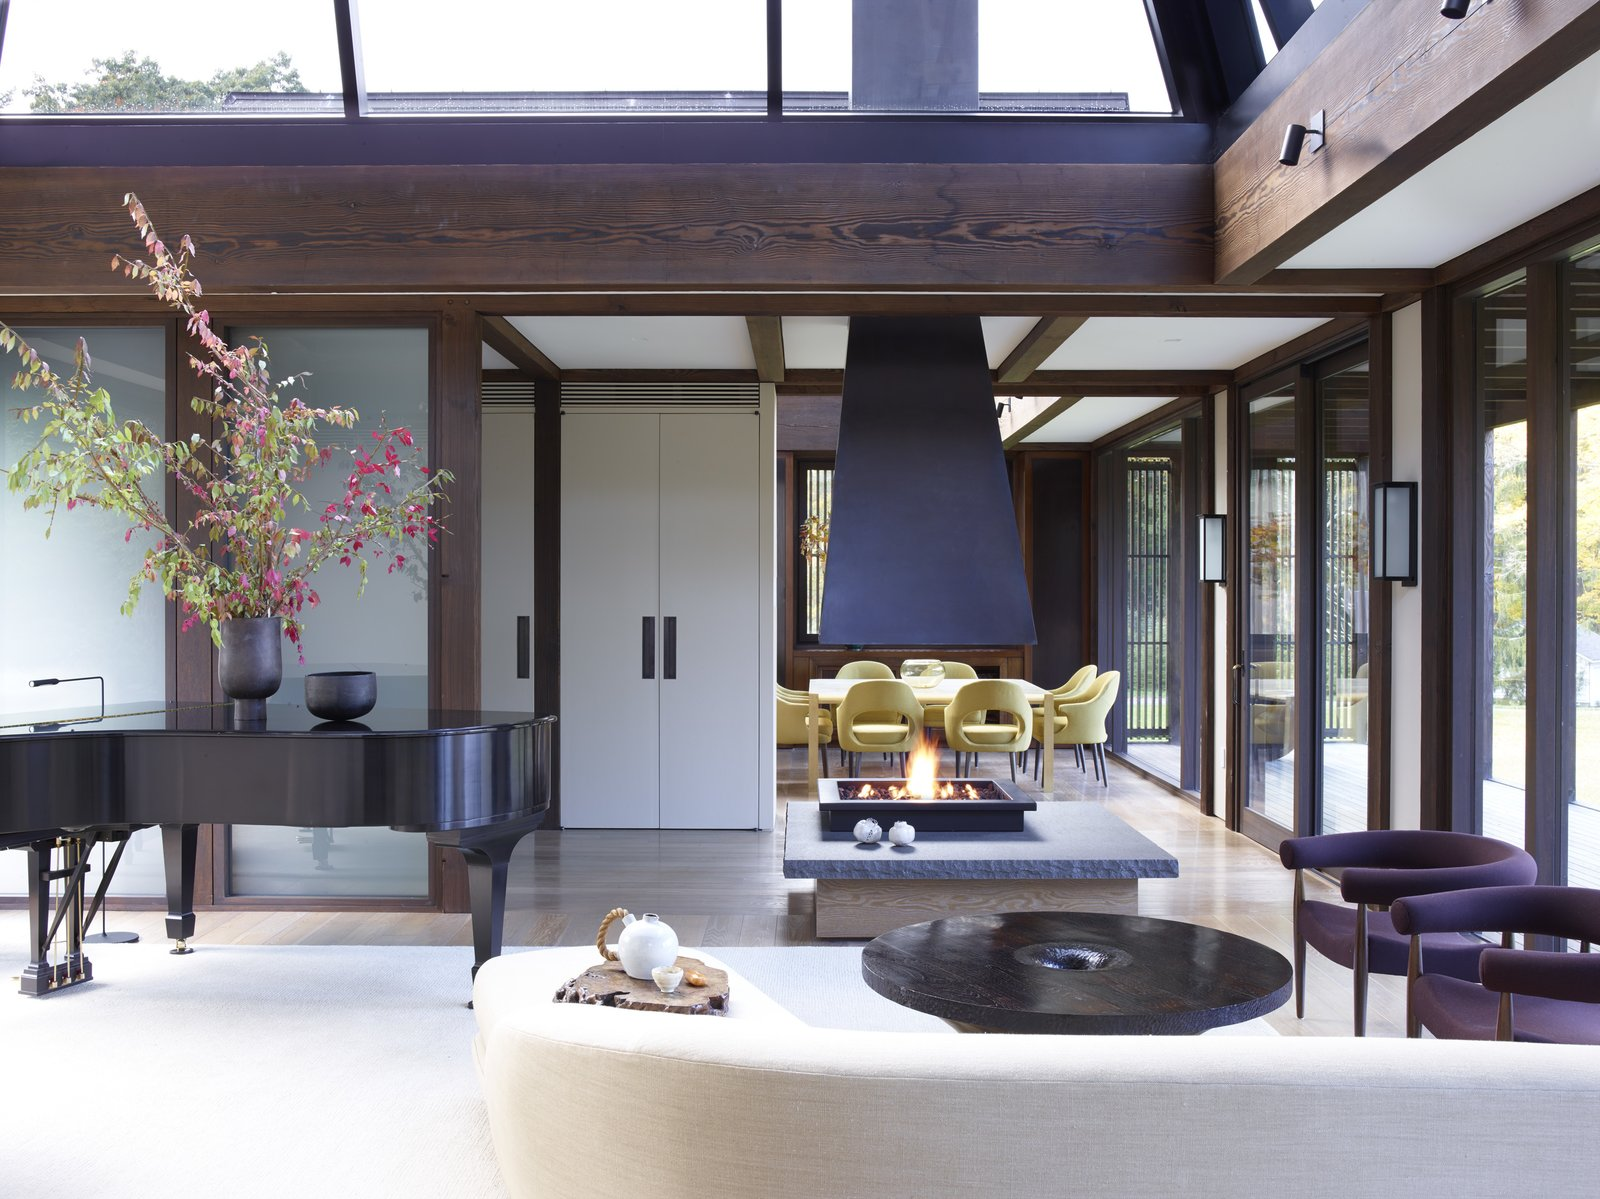 Feast Your Eyes on Fashion Designer Josie Natori\u0027s Japanese-Inspired Home & Feast Your Eyes on Fashion Designer Josie Natori\u0027s Japanese-Inspired ...